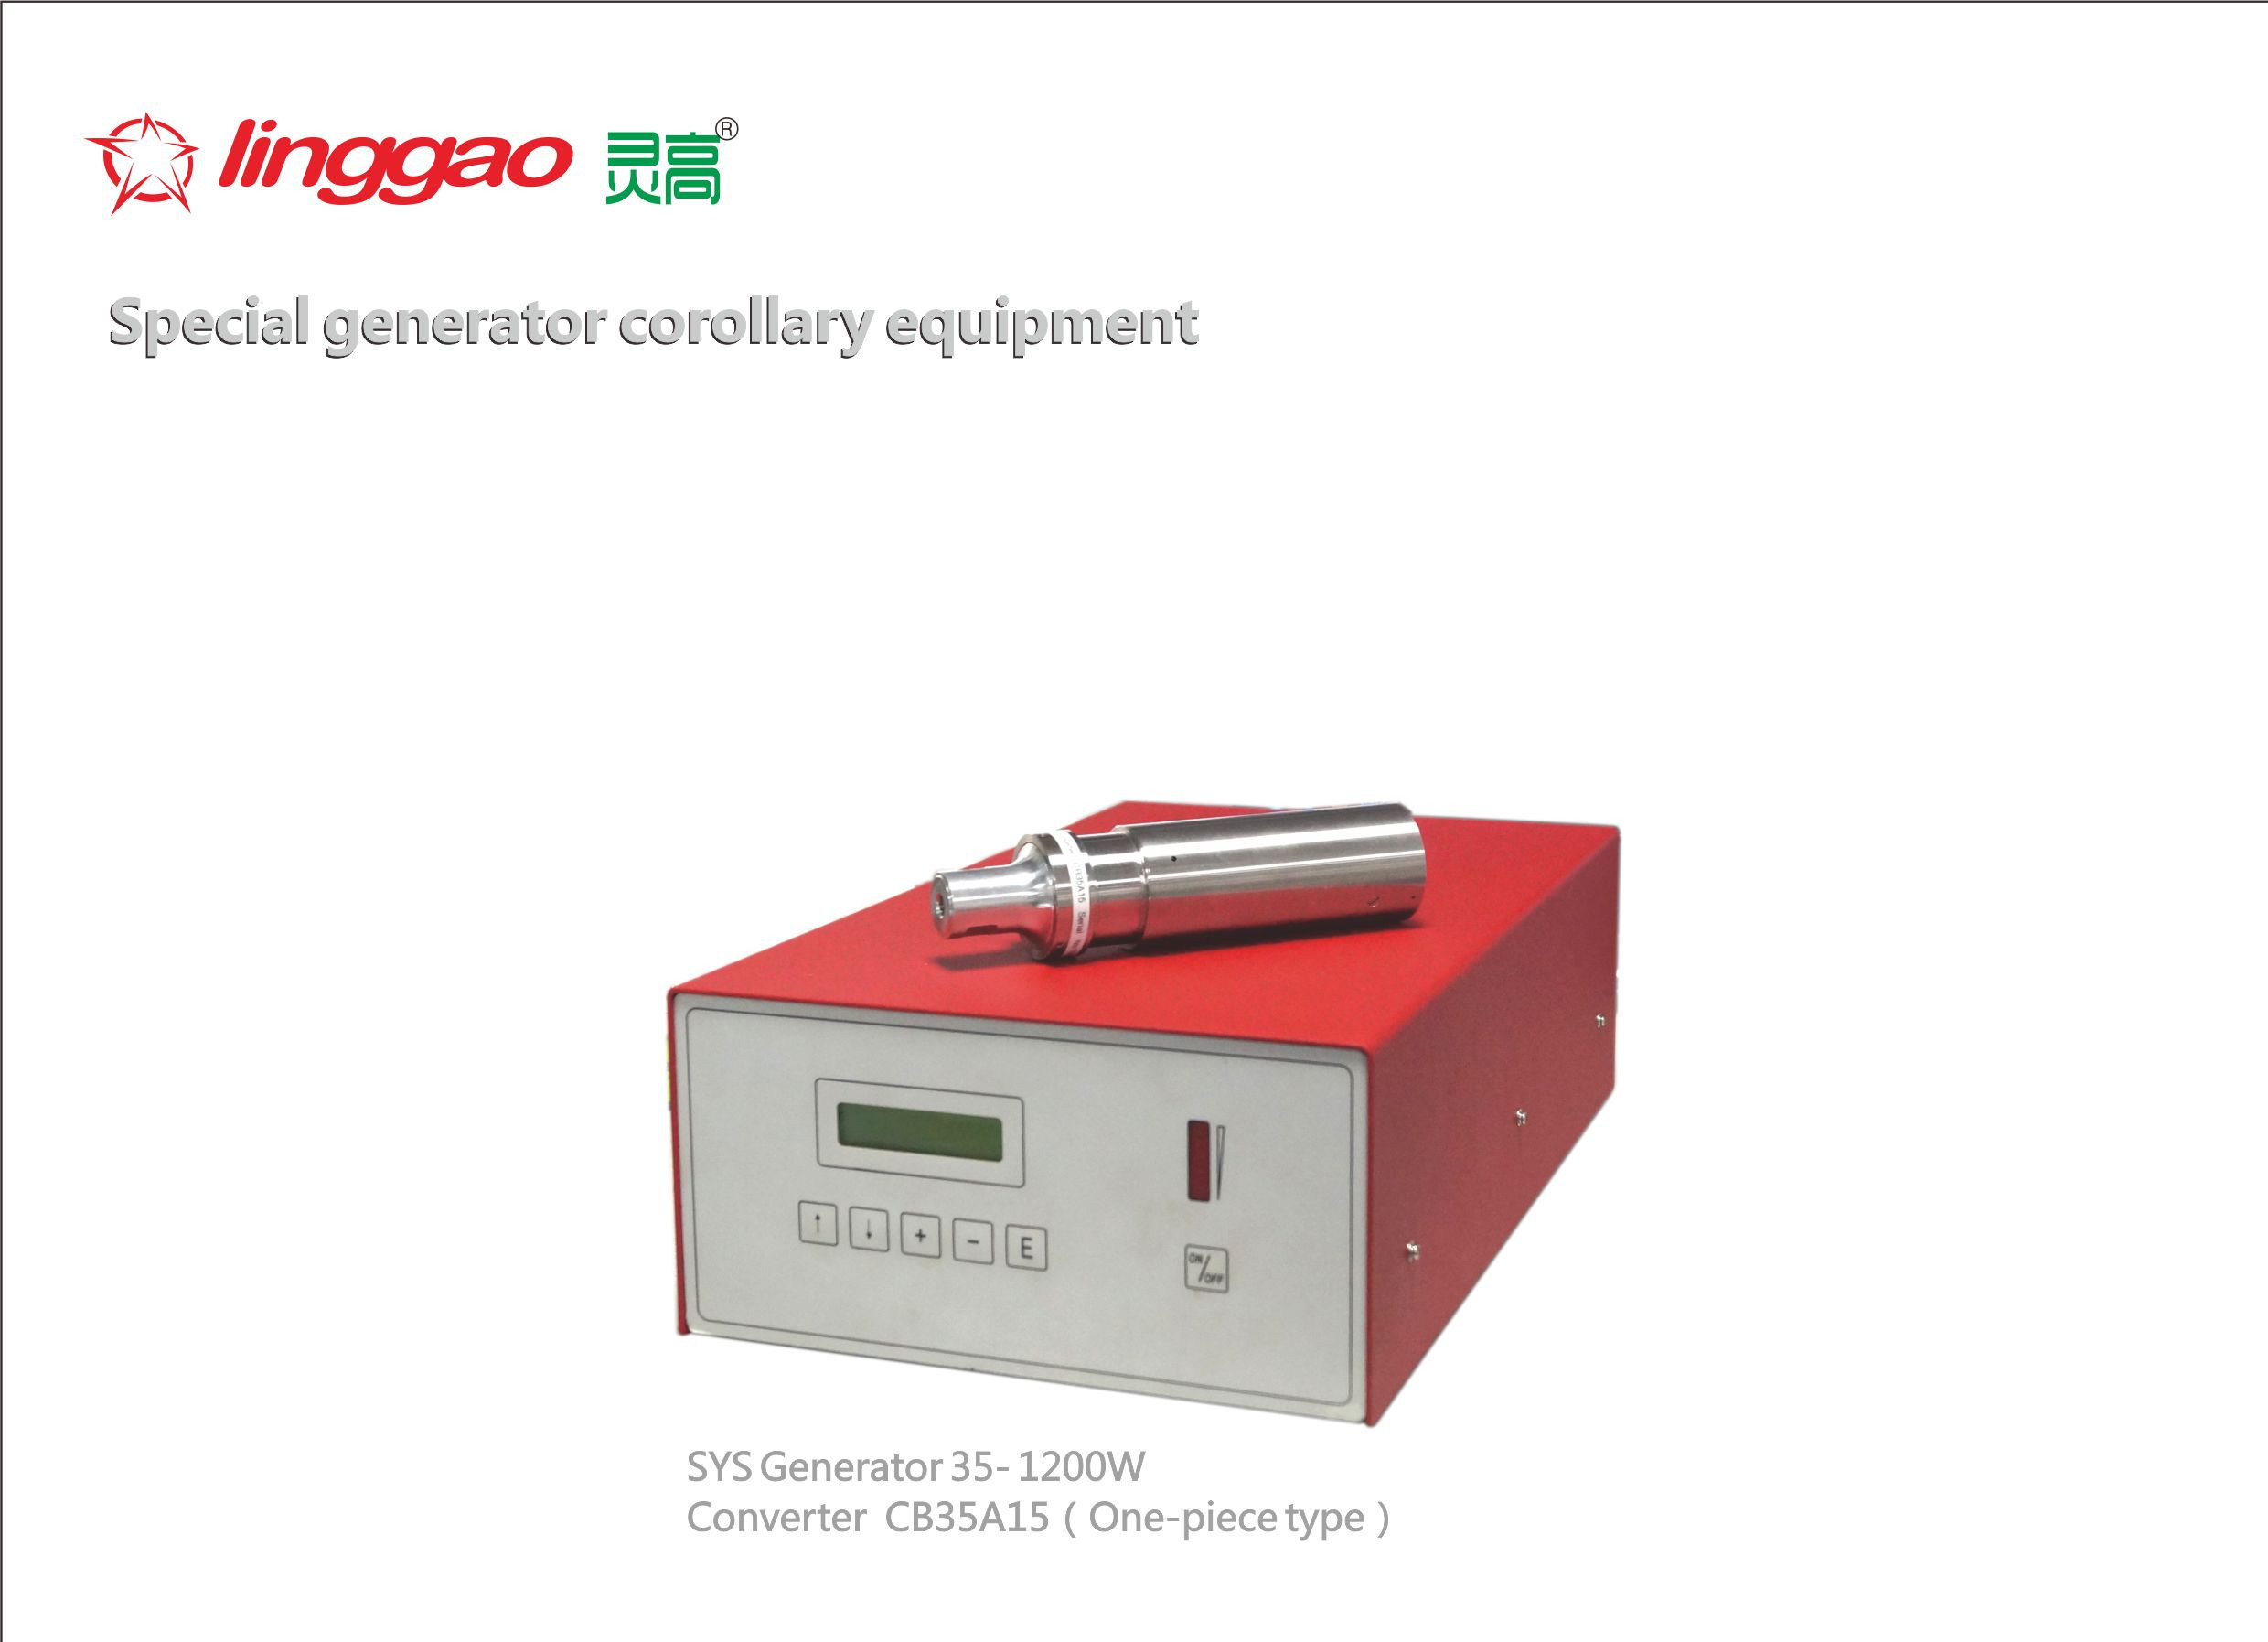 Rinco Ultrasonic Generator with Transducer and Booster